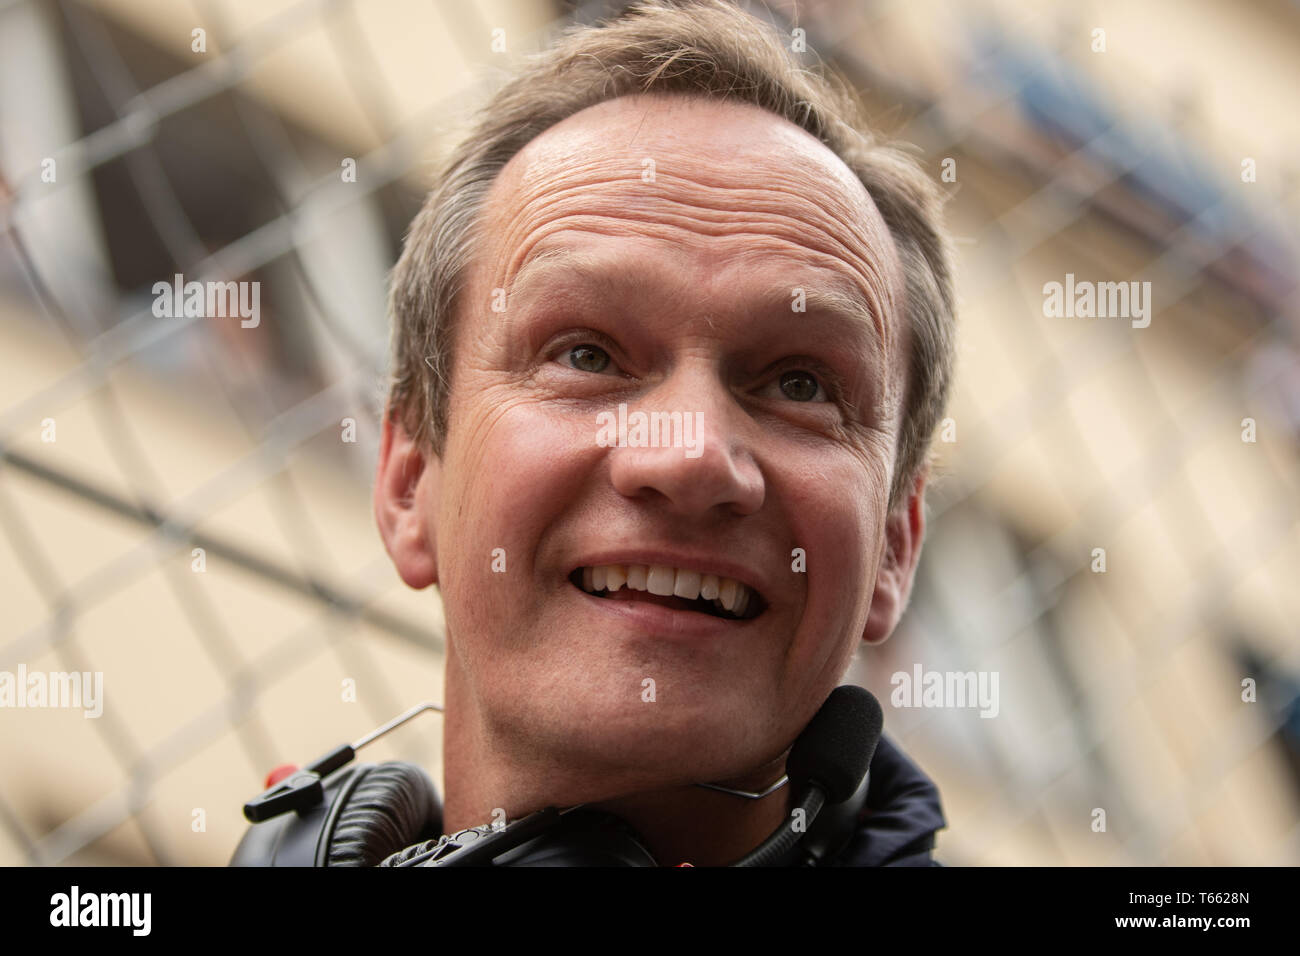 Monte Carlo/Monaco - 05/27/2018 -  Paul Monaghan (GBR, Chief Engineer for Red Bull Racing) after the Monaco GP - Stock Image